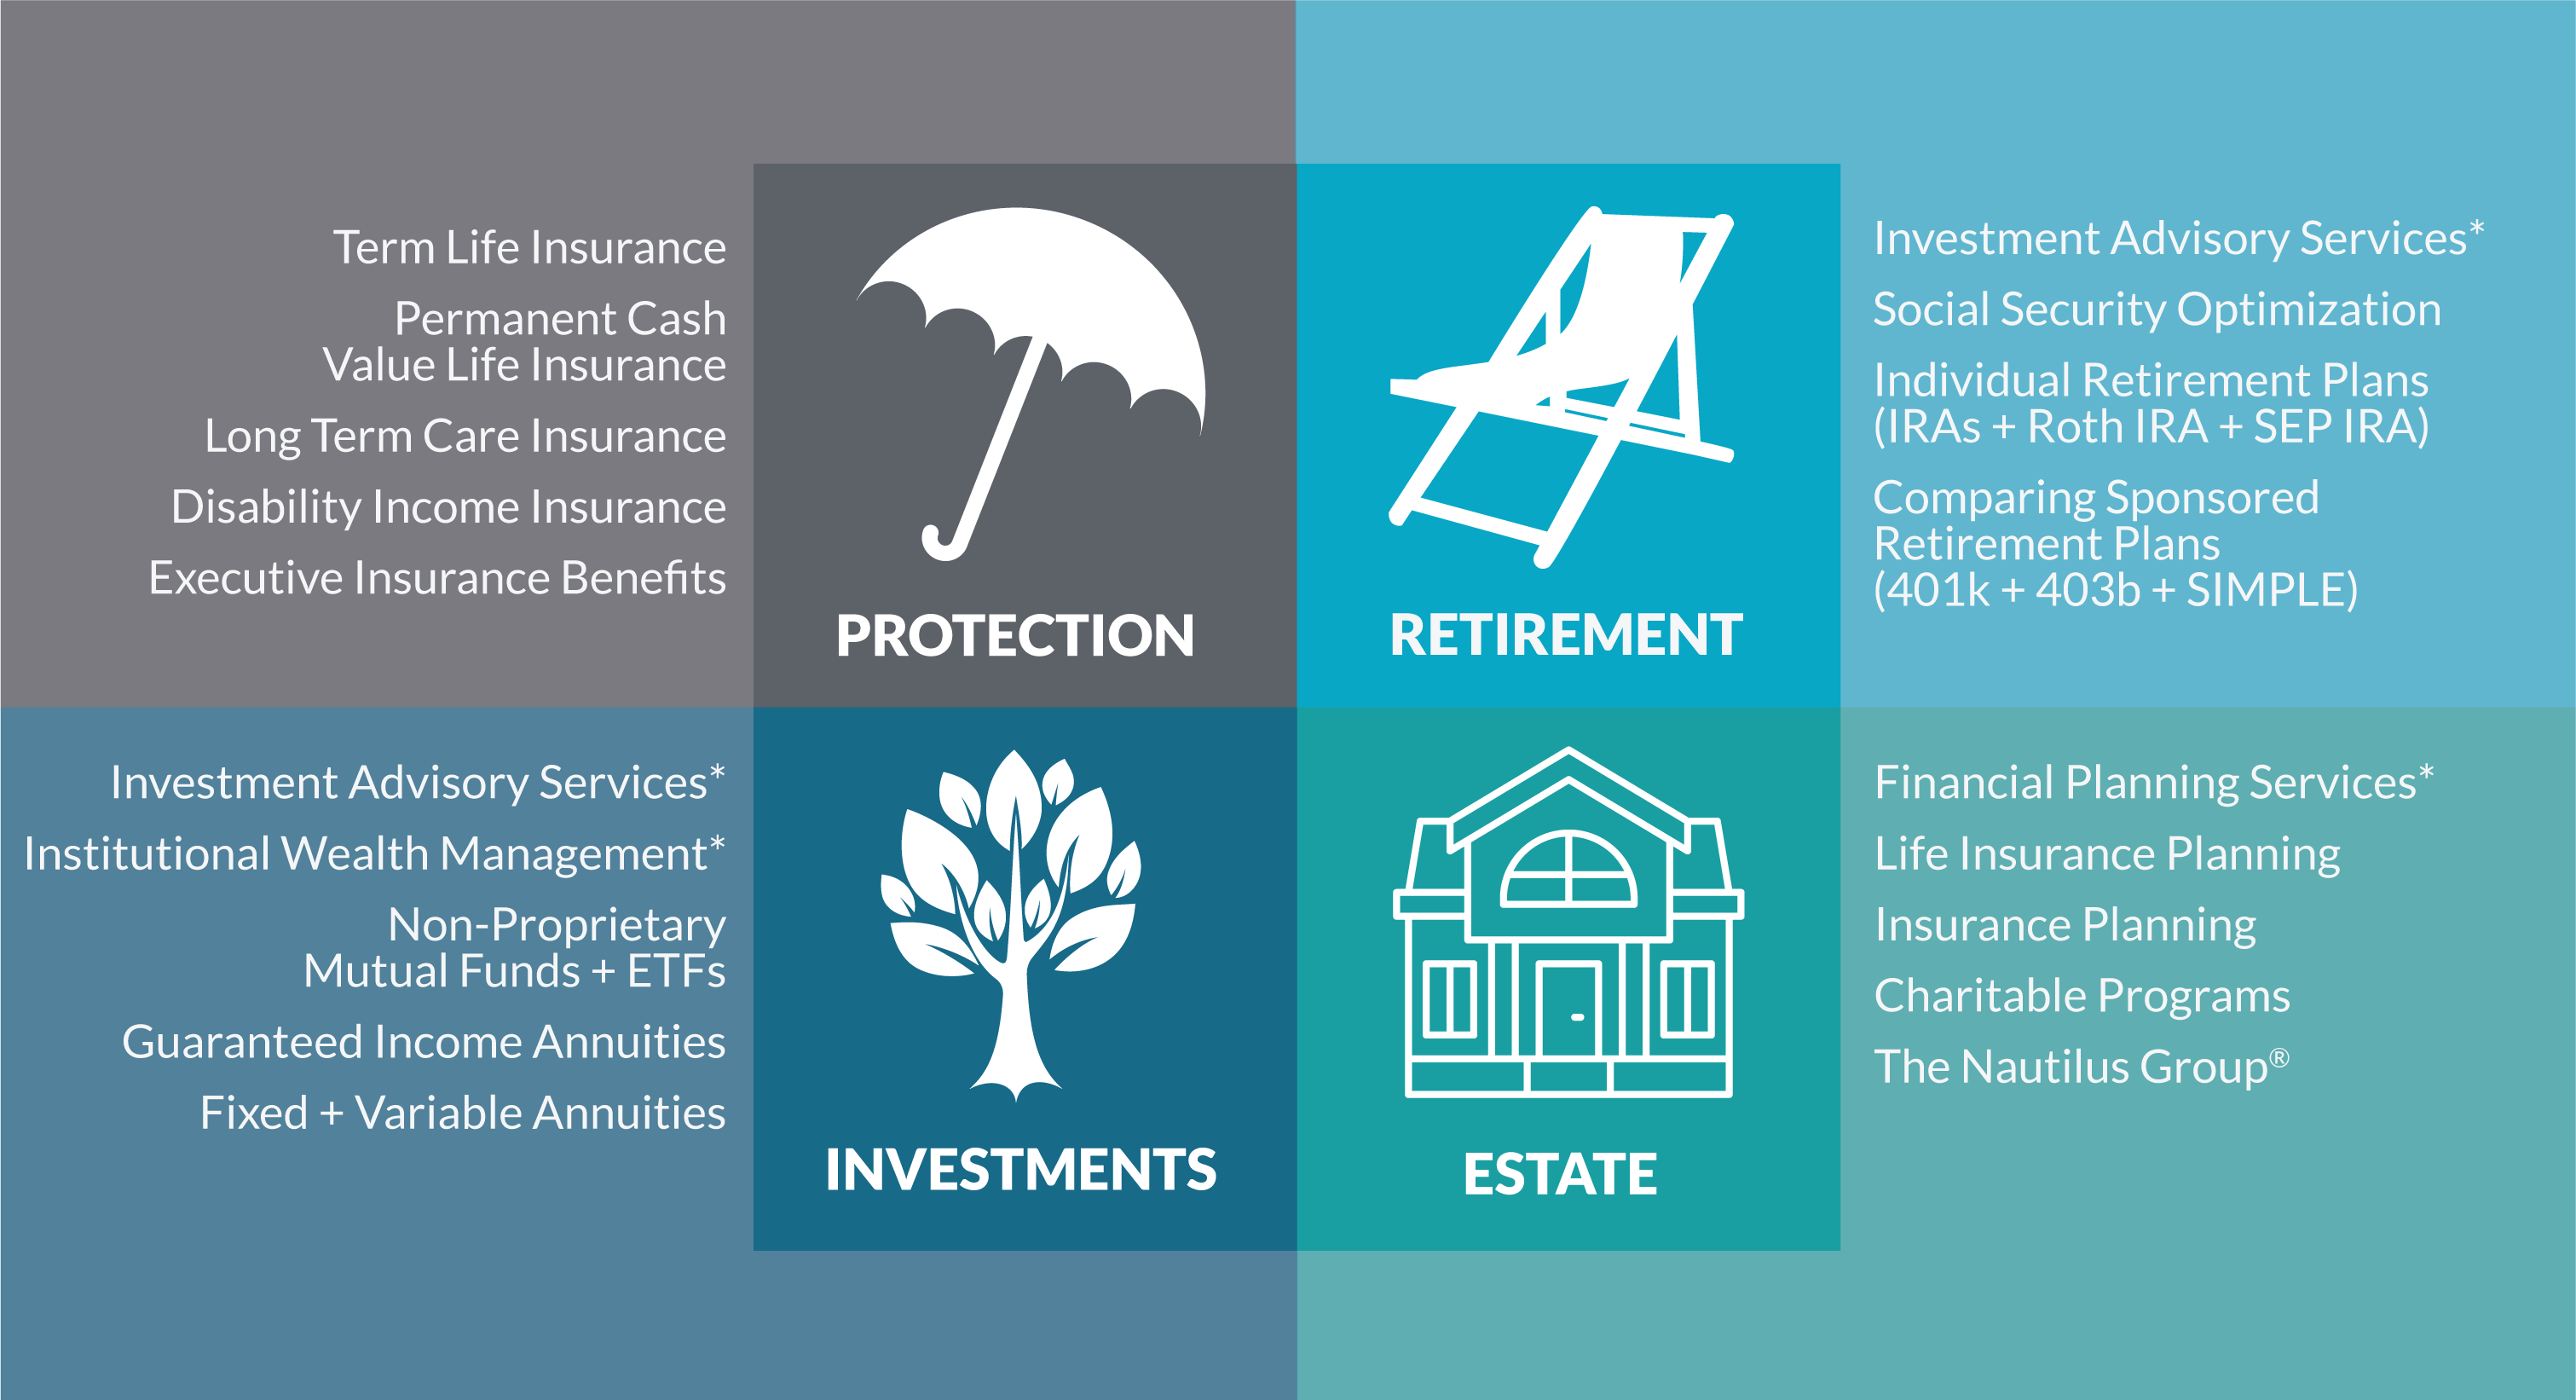 Life Insurance, Investments, Retirement, Financial Planning, Annuities, Executive Benefits, 401k, IRA, Charitable Giving